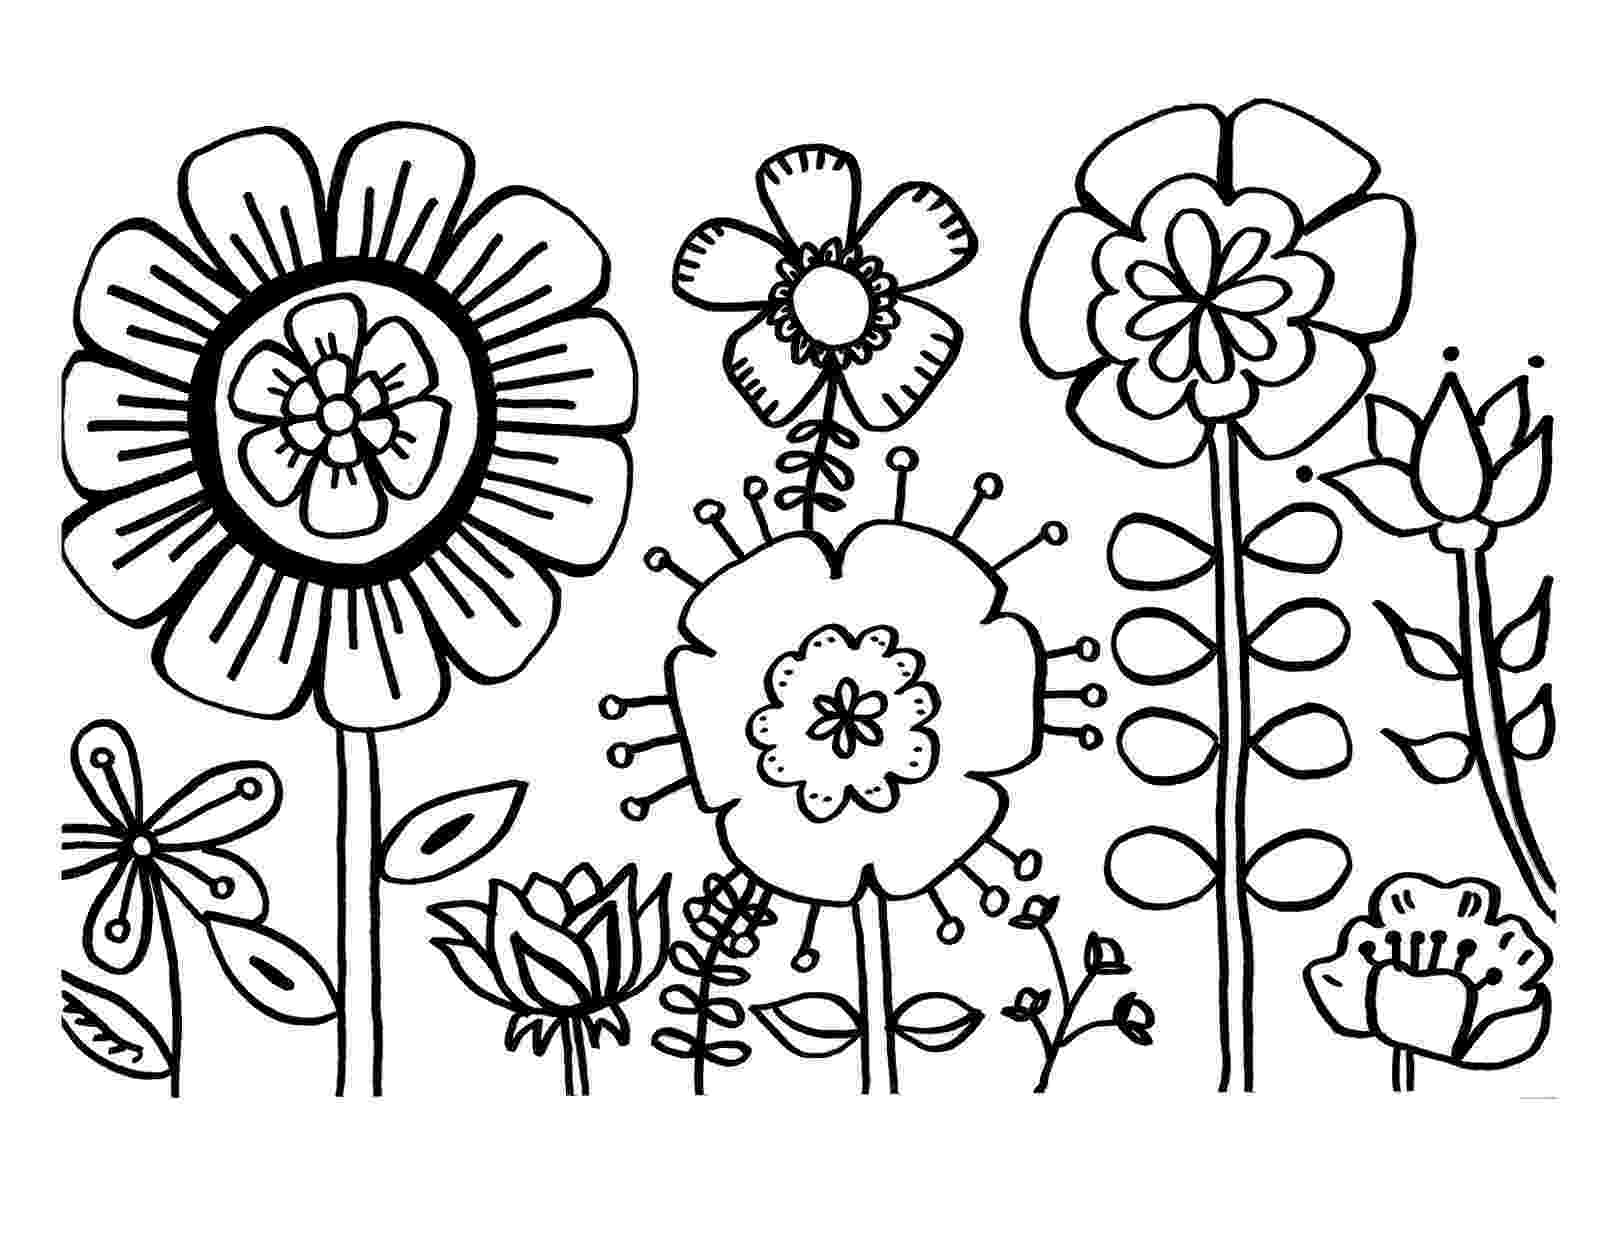 flowers colouring free printable flower coloring pages for kids cool2bkids colouring flowers